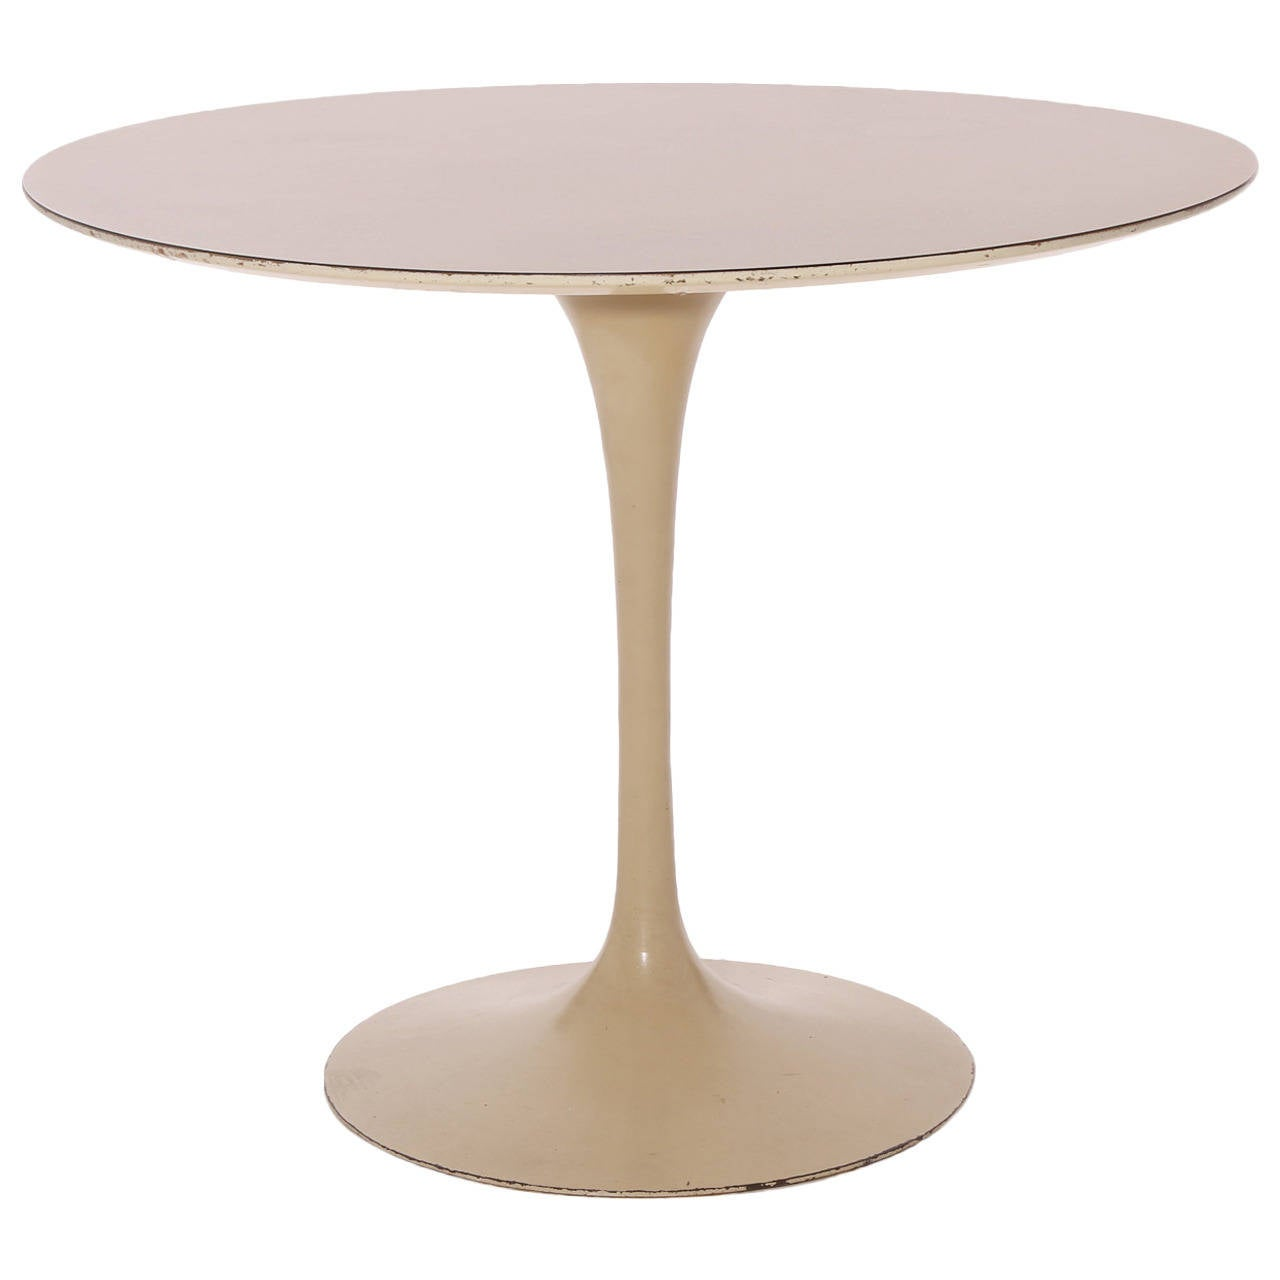 Tulip Tisch Early Iron Base Tulip Dining Table By Eero Saarinen At 1stdibs